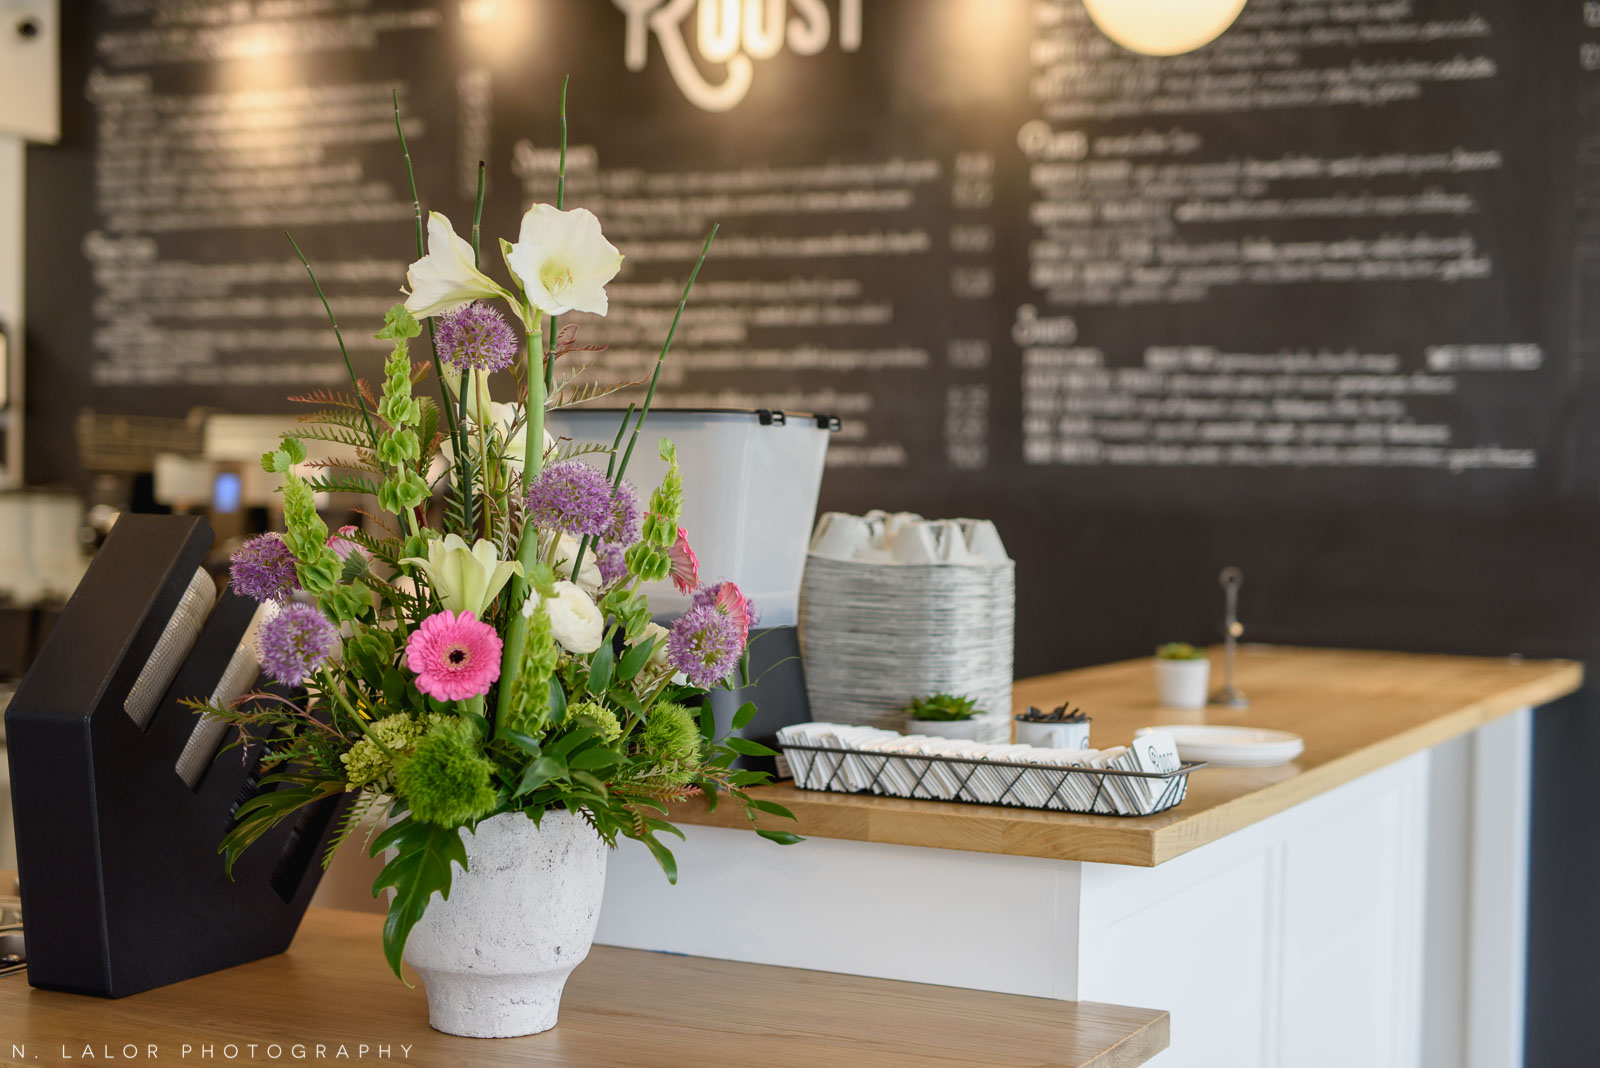 Interior details with flowers. Roost Darien, small business photos by N. Lalor Photography.